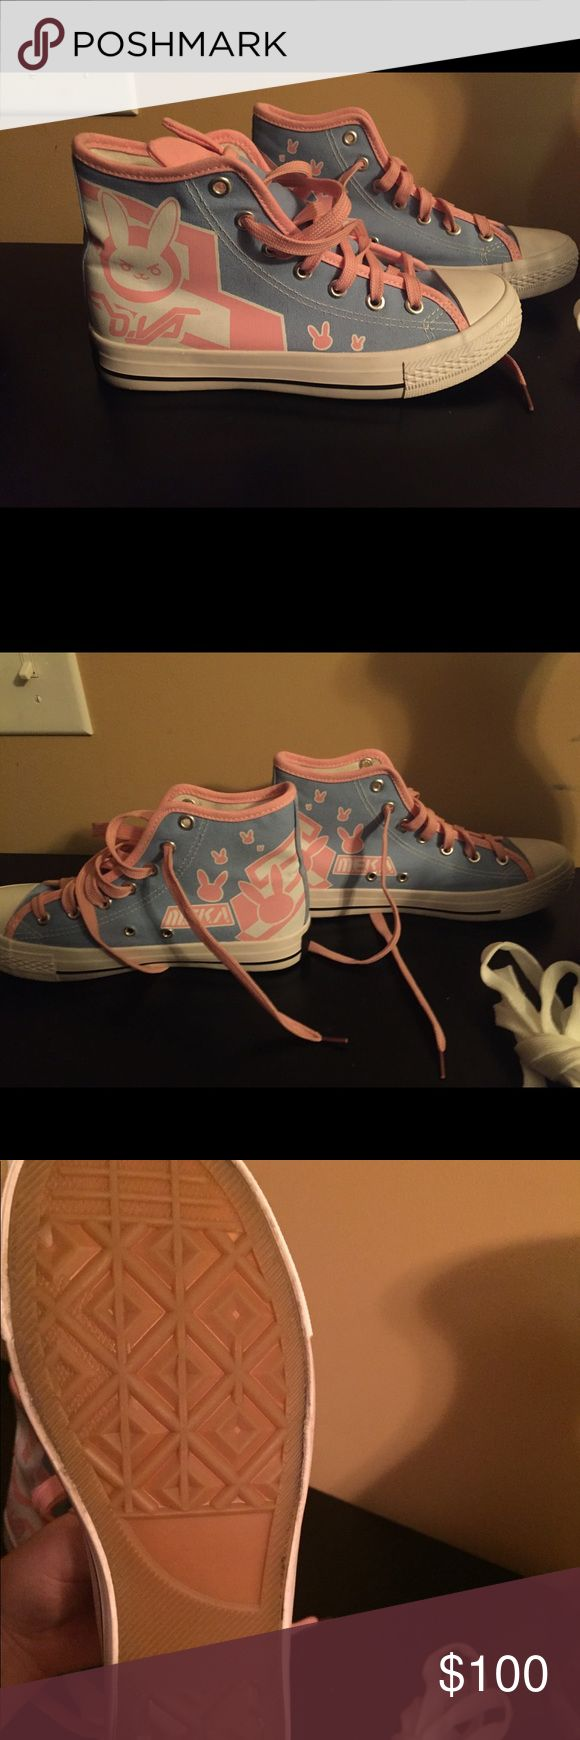 D.va Overwatch Shoes Brand new Excellent condition  Never been worn because bought too small Overseas online only product Price Negotiable Shoes Sneakers